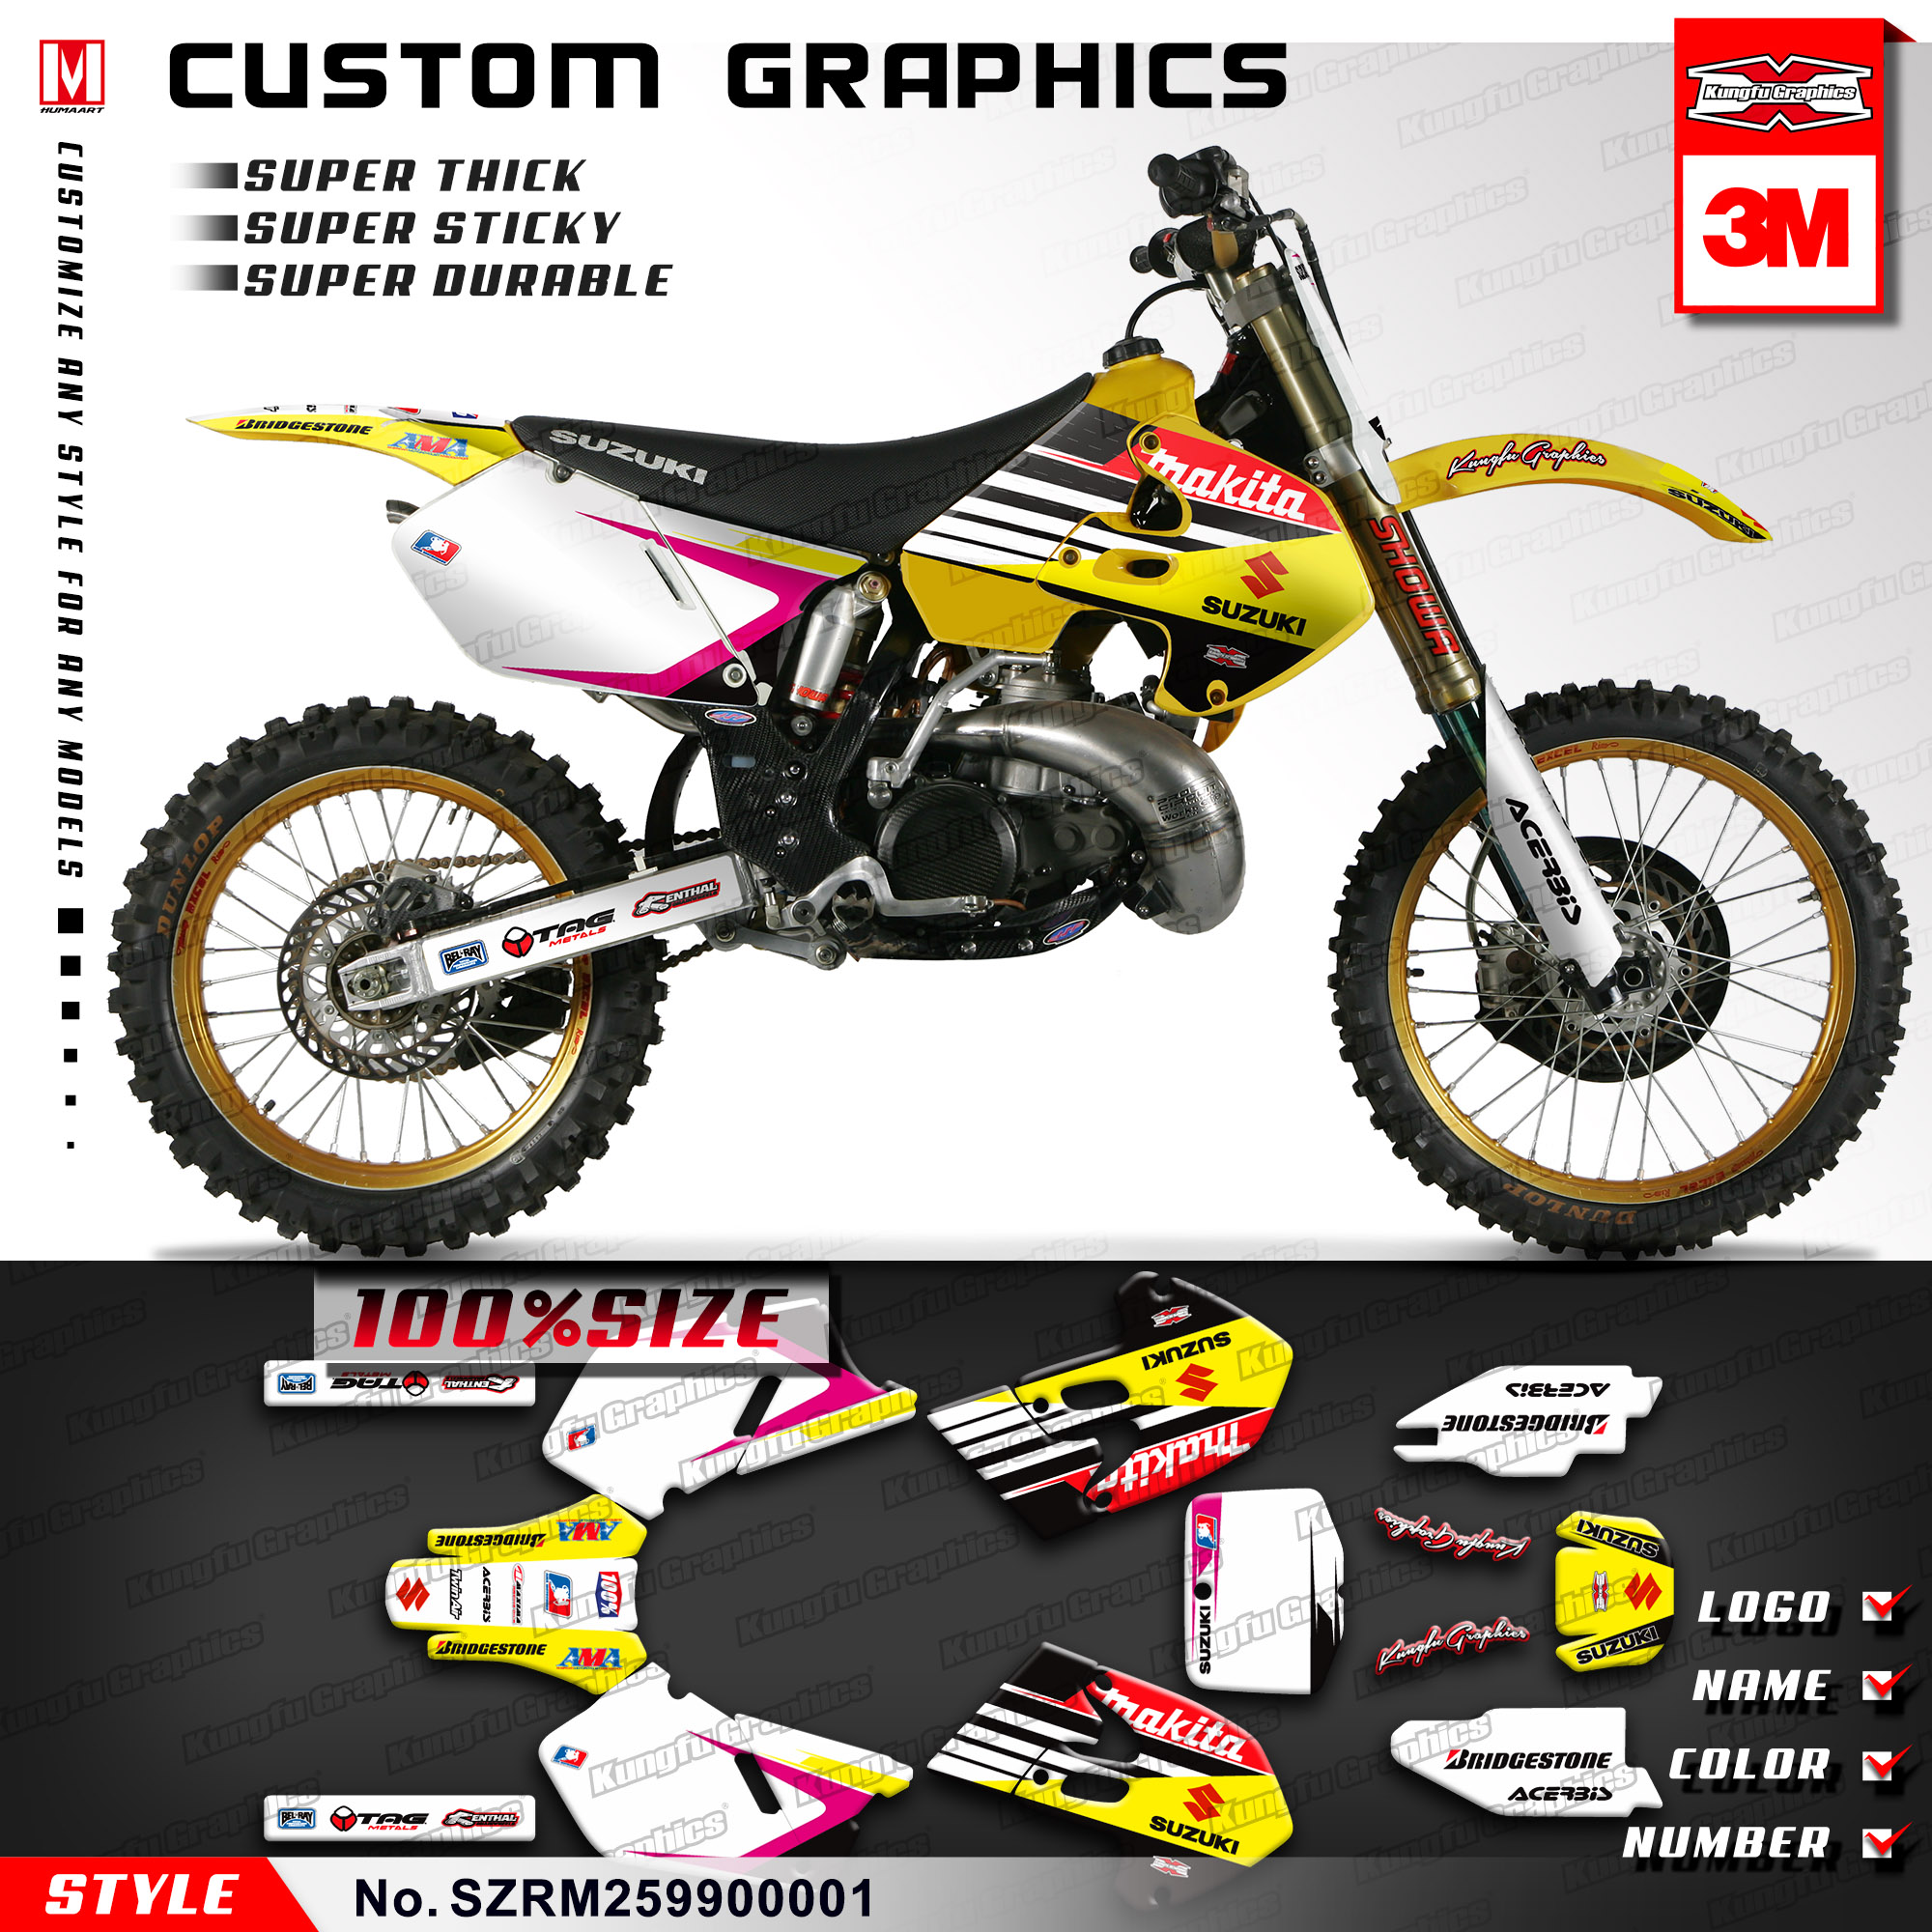 US $129 89 |KUNGFU GRAPHICS Motocross Custom Vinyl Stickers Decals Kit for  Suzuki RM 125 250 RM125 RM250 1999 2000 (Style no  SZRM259900001)-in Decals